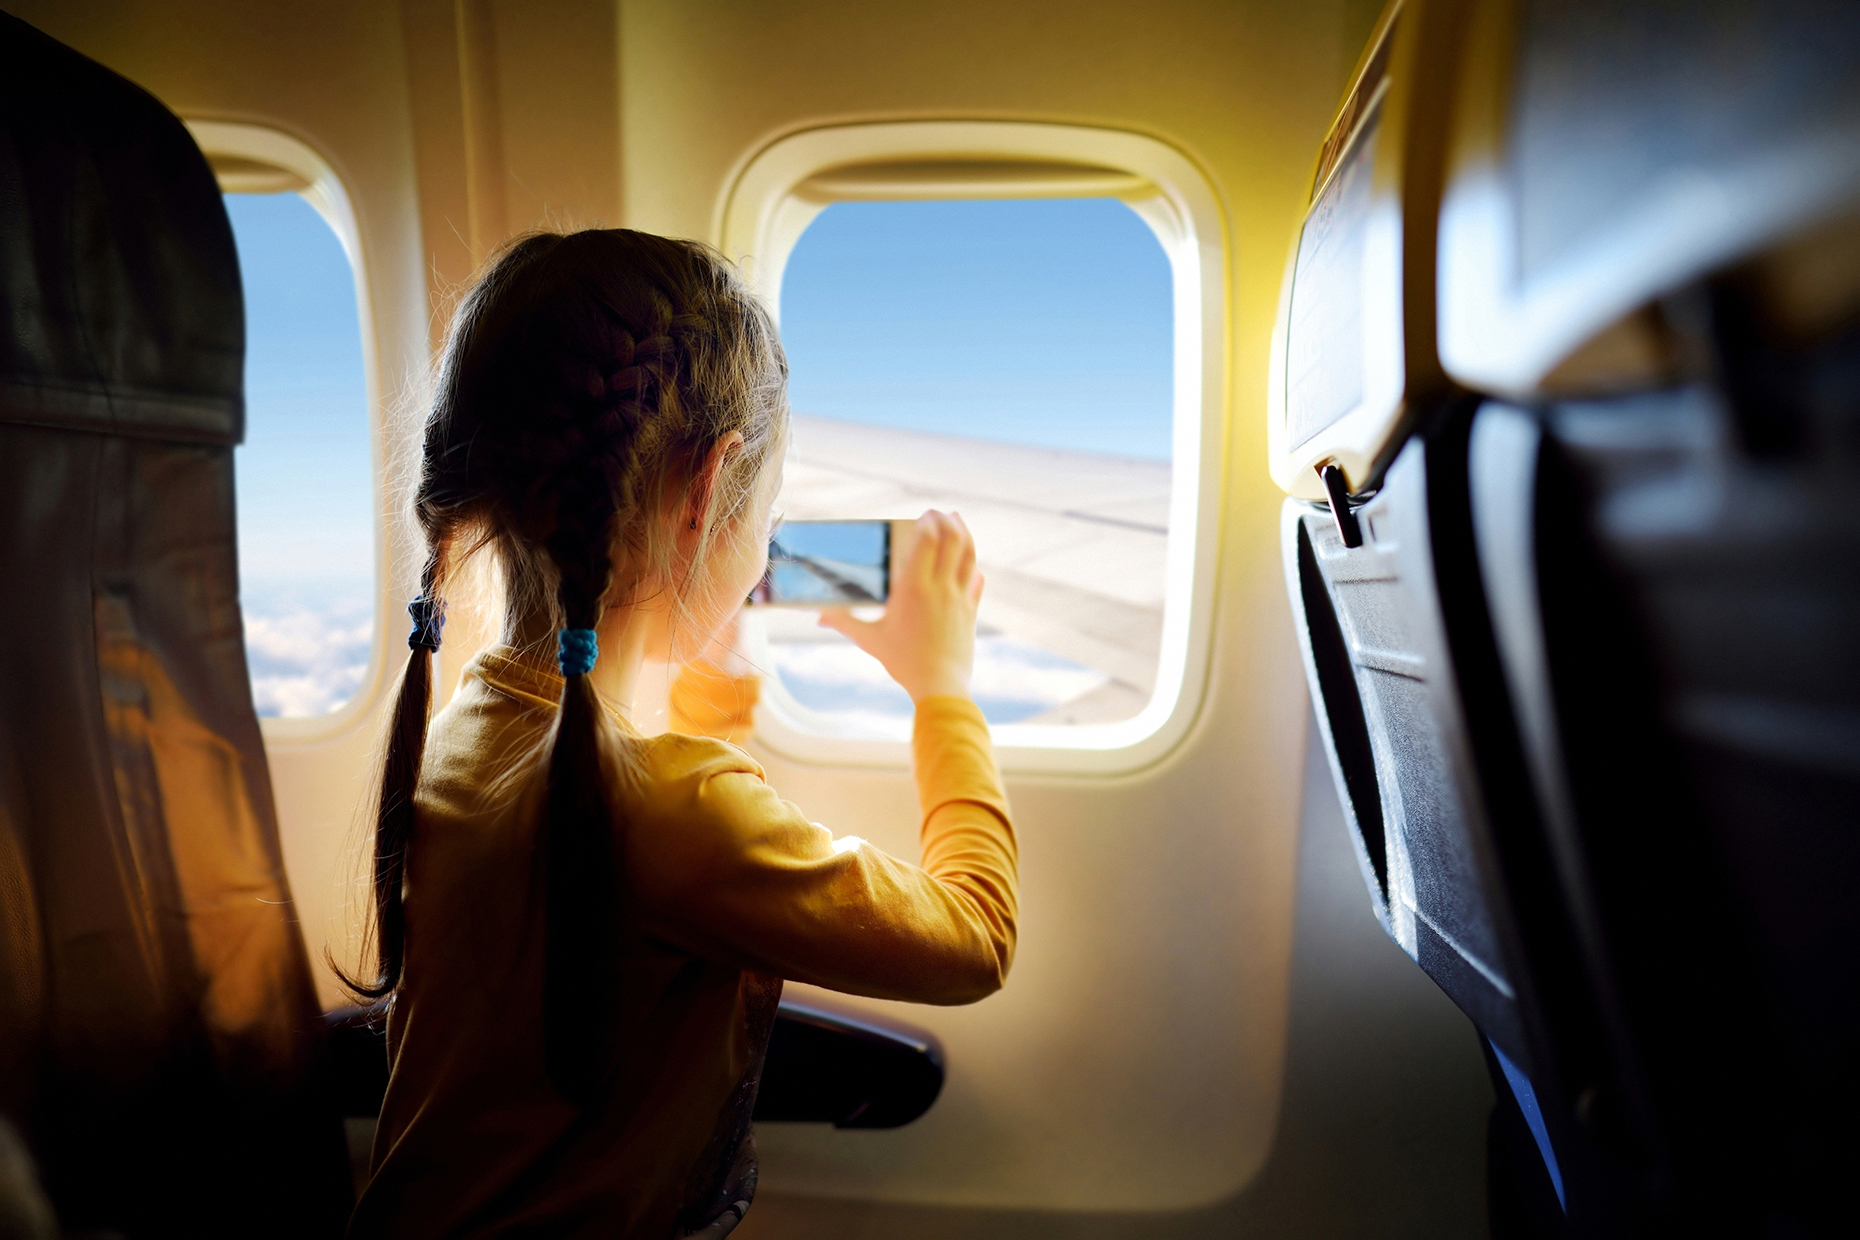 Girl taking pictures on a plane